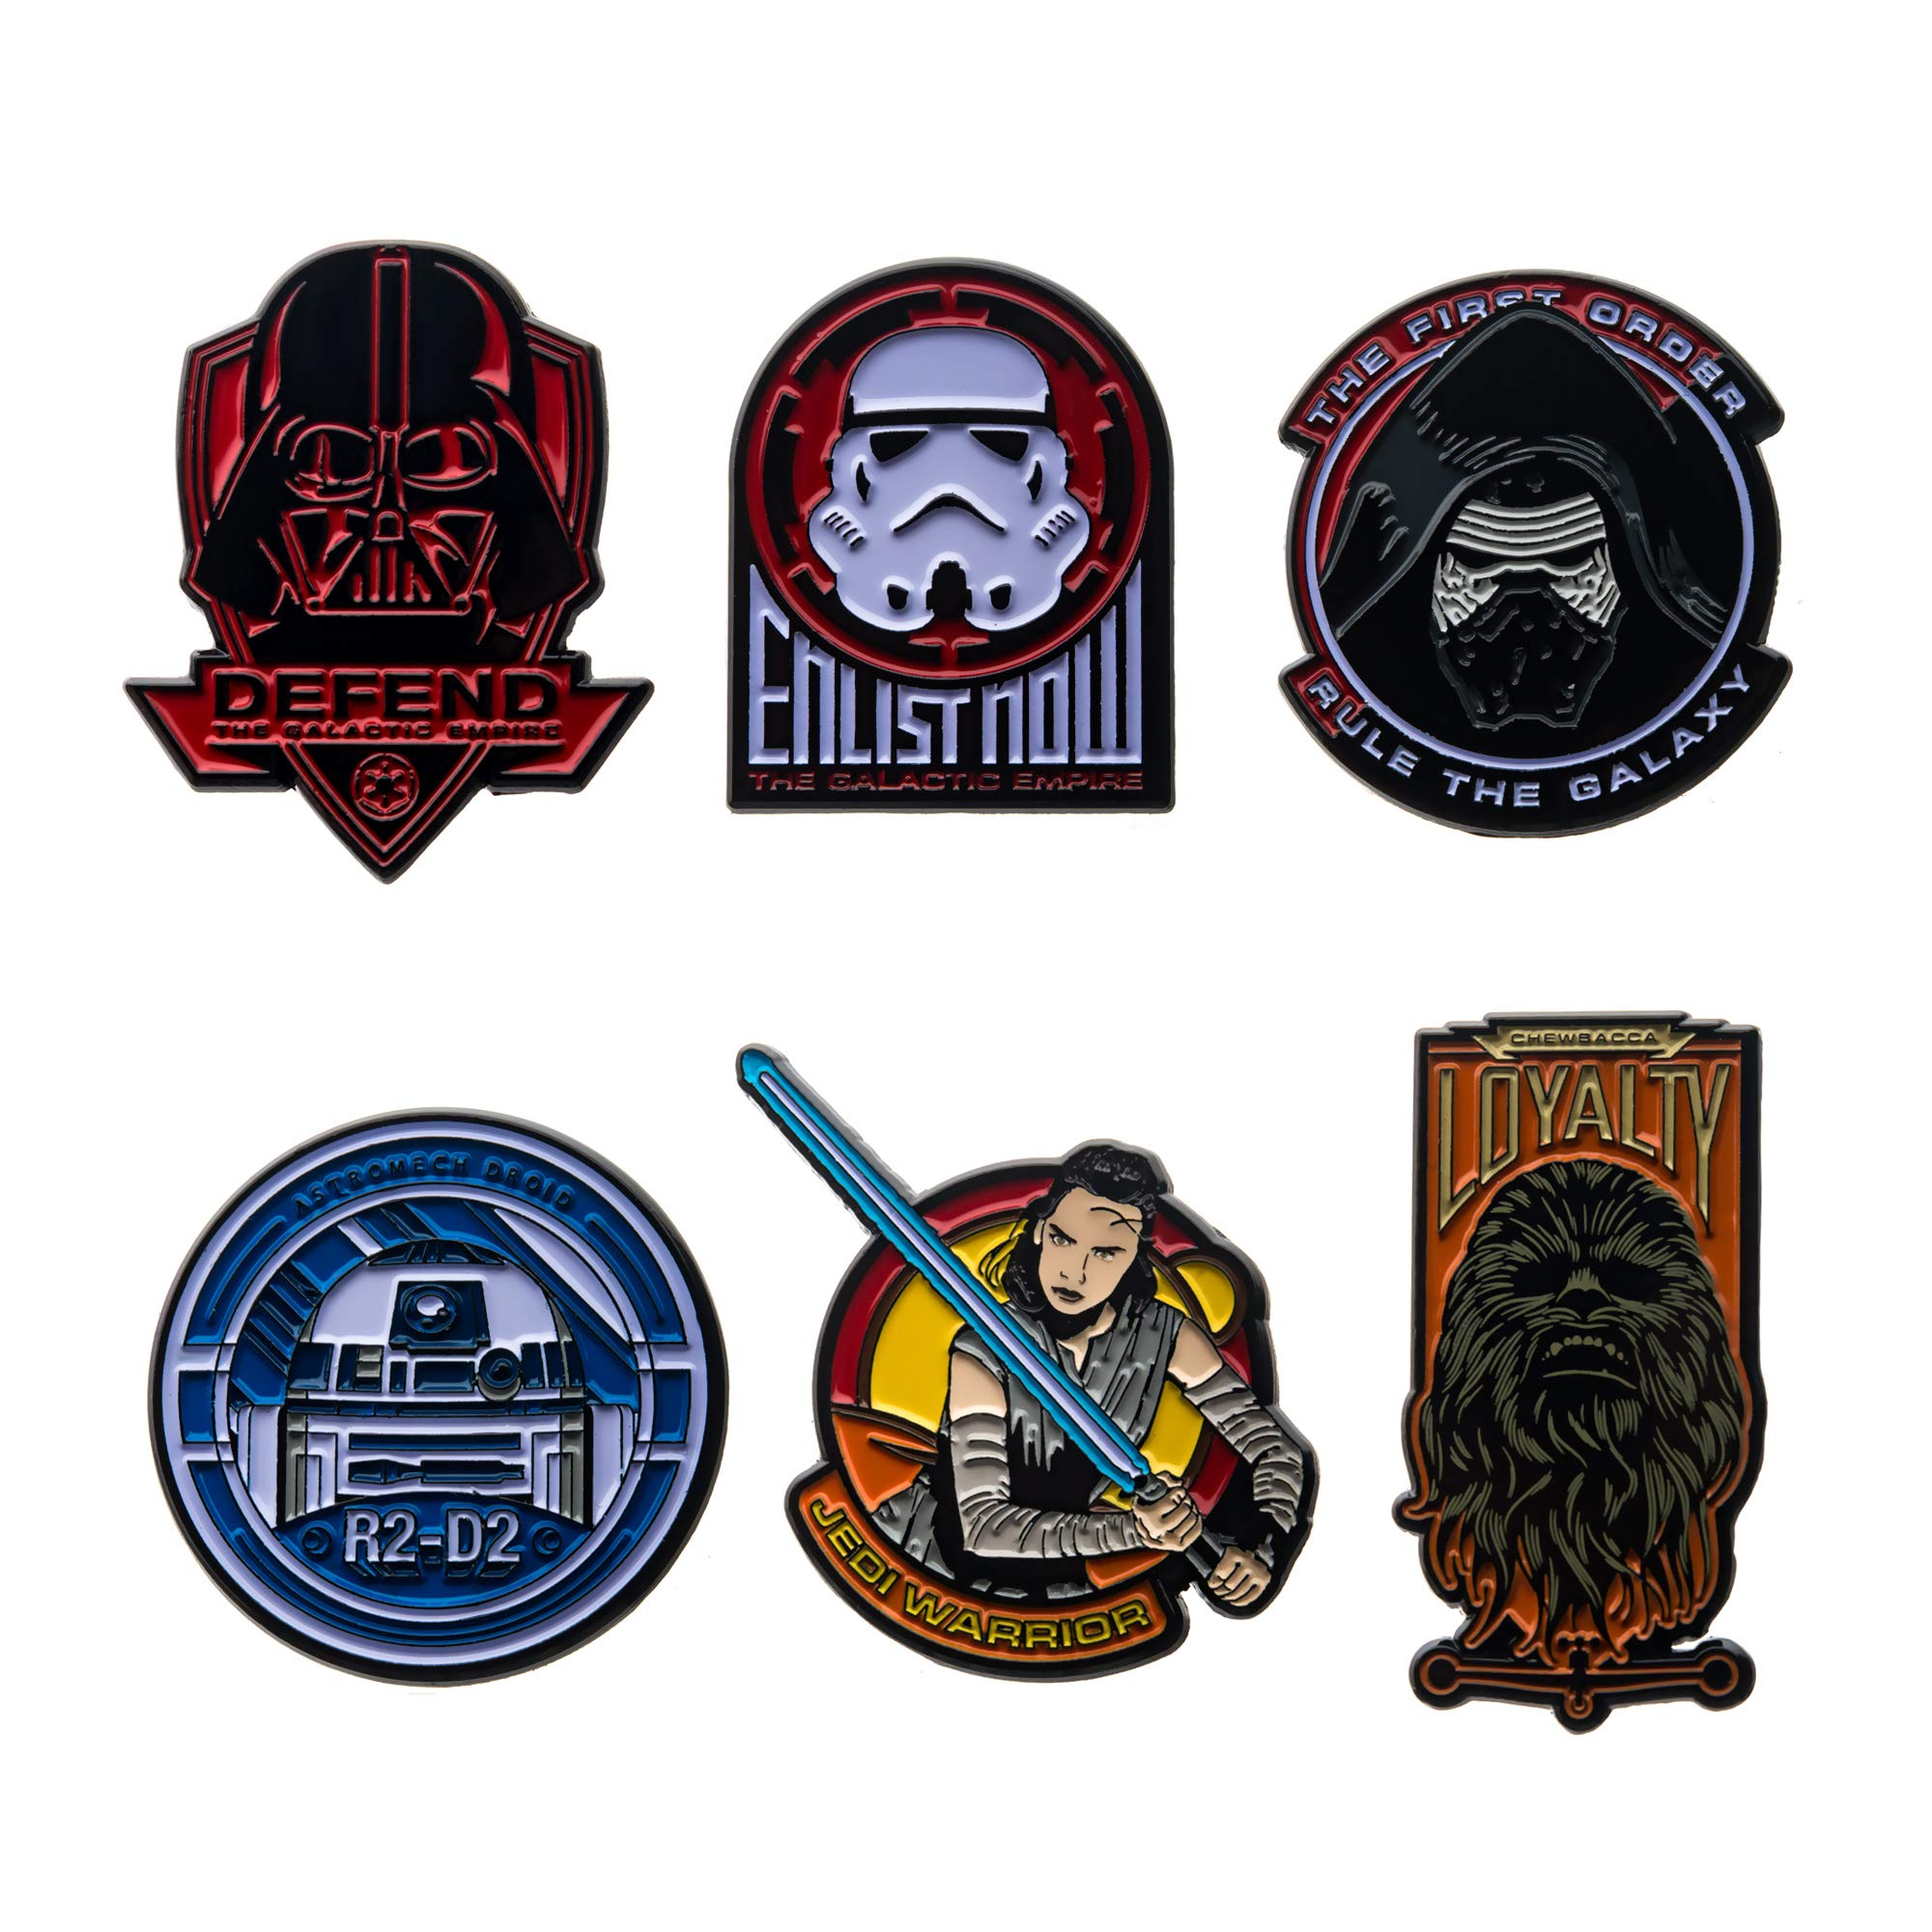 Star Wars Jewelry Unisex Adult Character Pack Pin Set of 6, Multicolor, One Size by Star Wars Jewelry